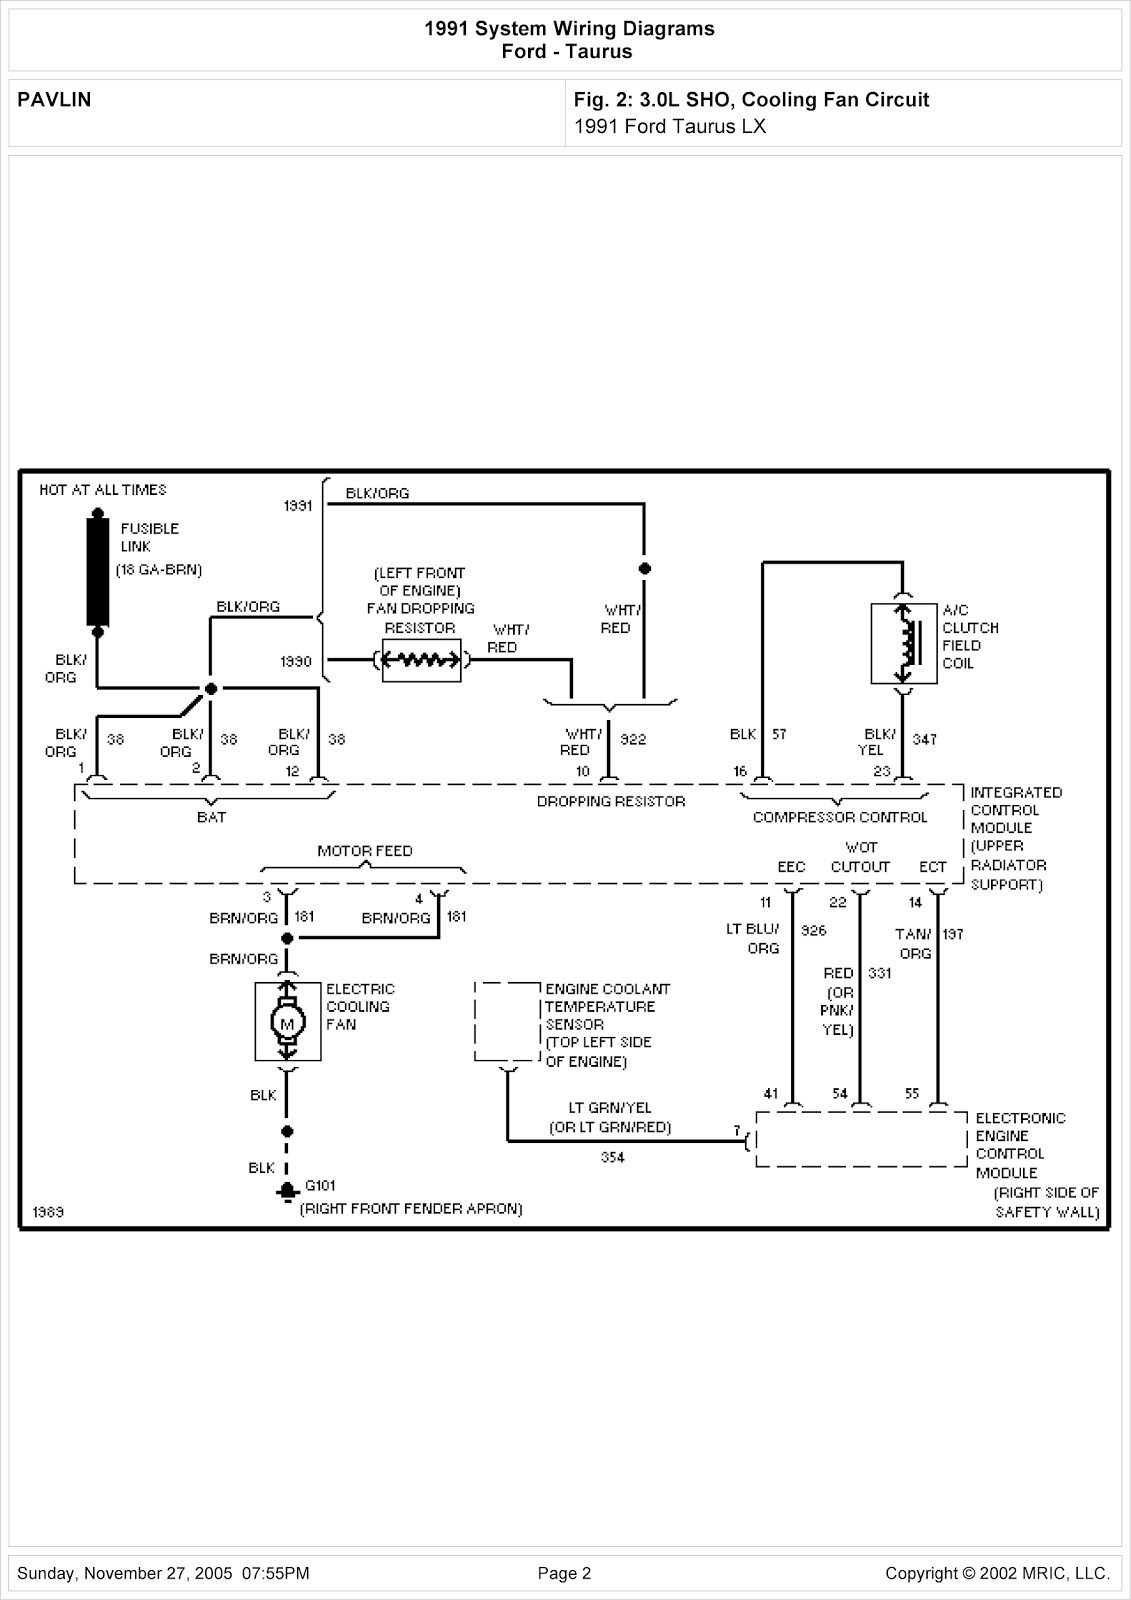 1999 ford taurus system wiring diagram cooling fan circuit 1999 ford taurus system wiring diagram cooling fan circuit